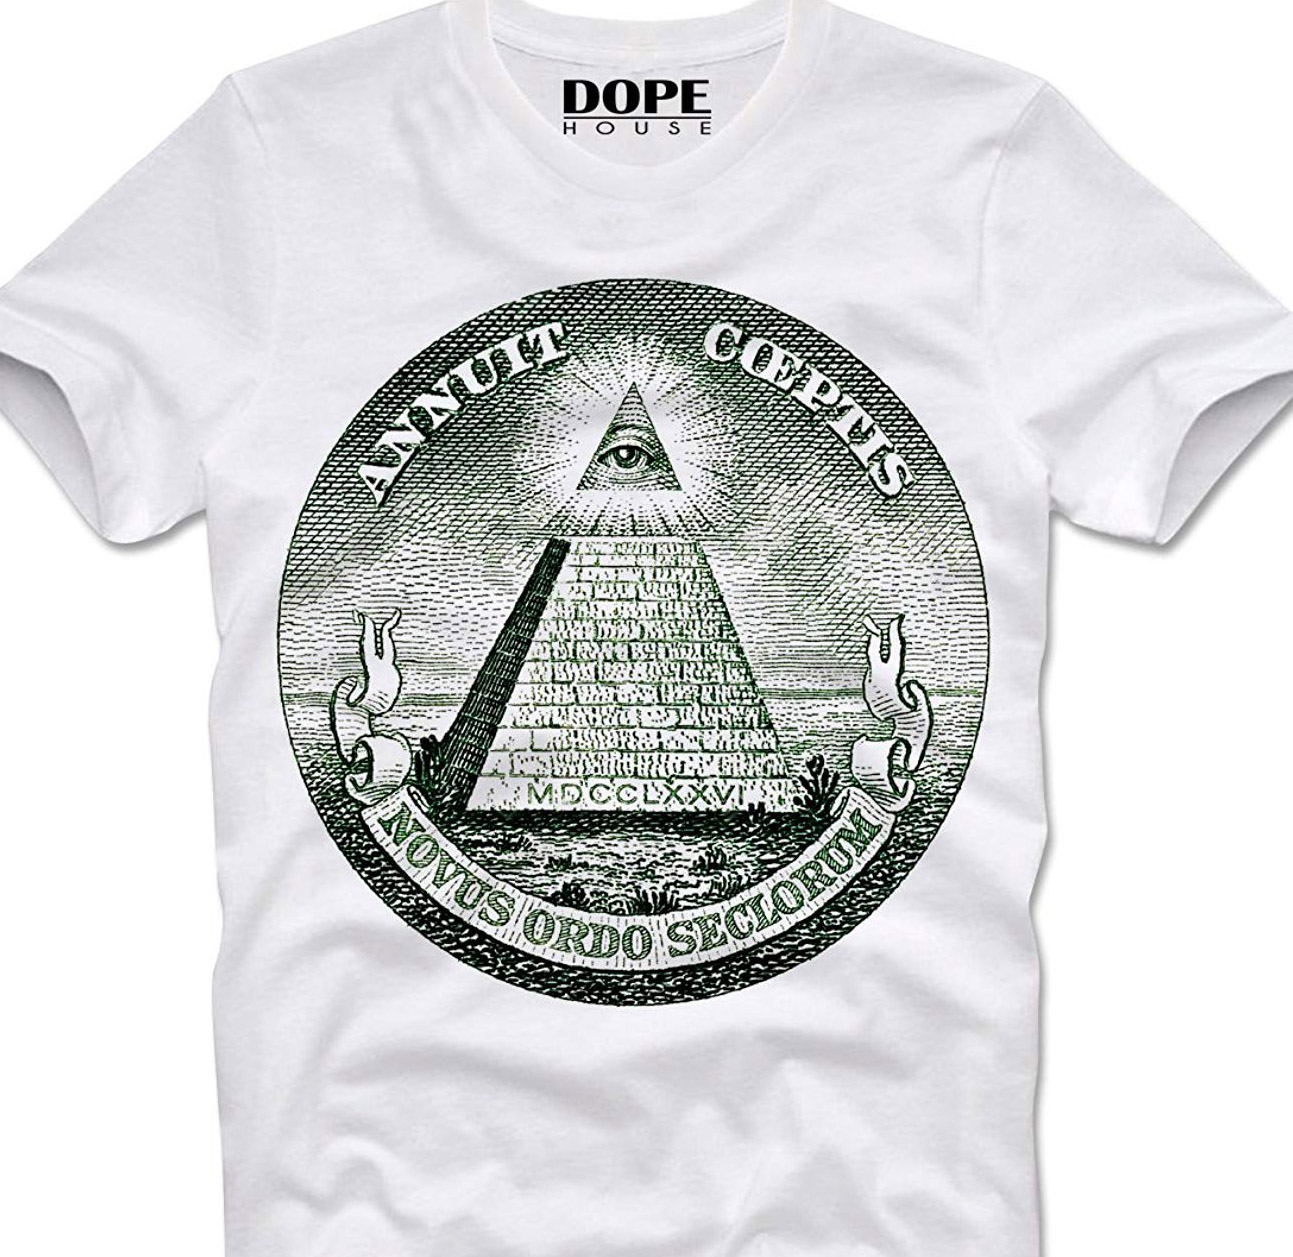 Good quality and cheap nwo shirt in Store Xprice